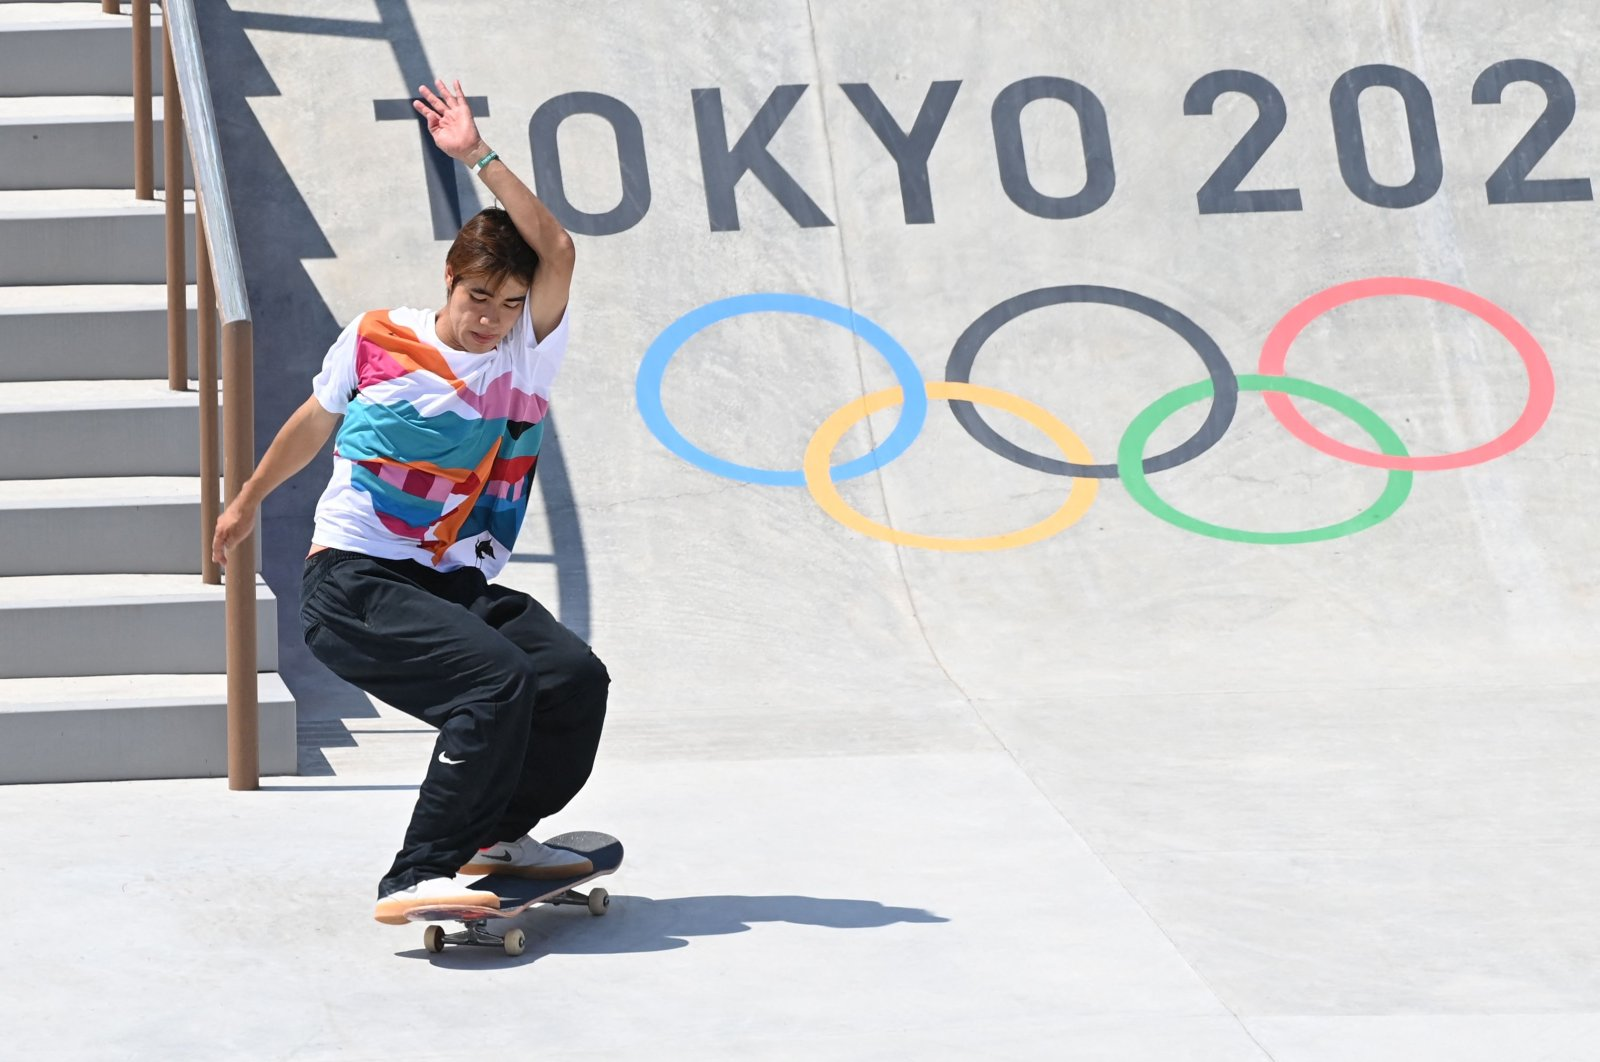 Japan's Yuto Horigome competes in the men's street final during the Tokyo 2020 Olympic Games at Ariake Sports Park Skateboarding in Tokyo, Japan, July 25, 2021. (AFP Photo)